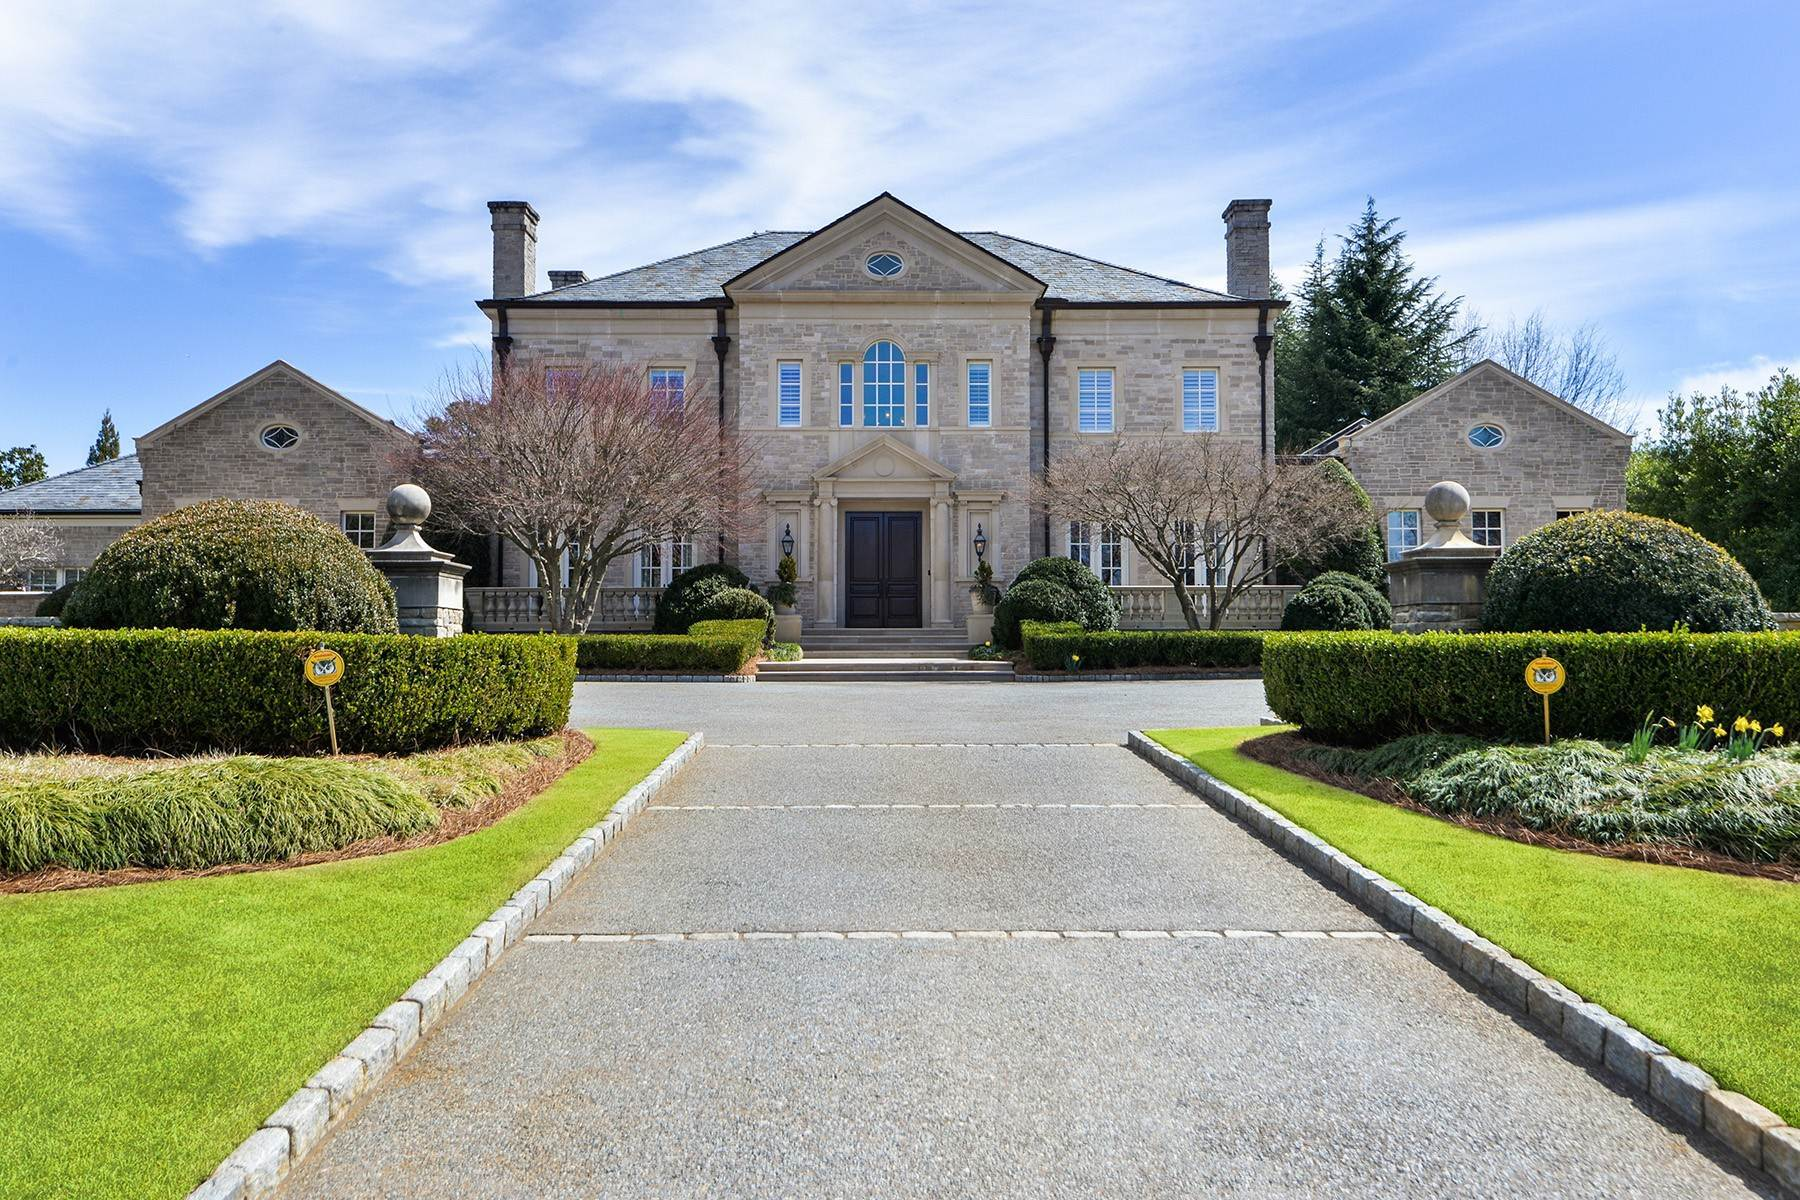 Single Family Homes for Sale at Introducing One Of The Most Elegant Homes In All Of Metro Atlanta 151 Atlanta Country Club Drive Marietta, Georgia 30067 United States